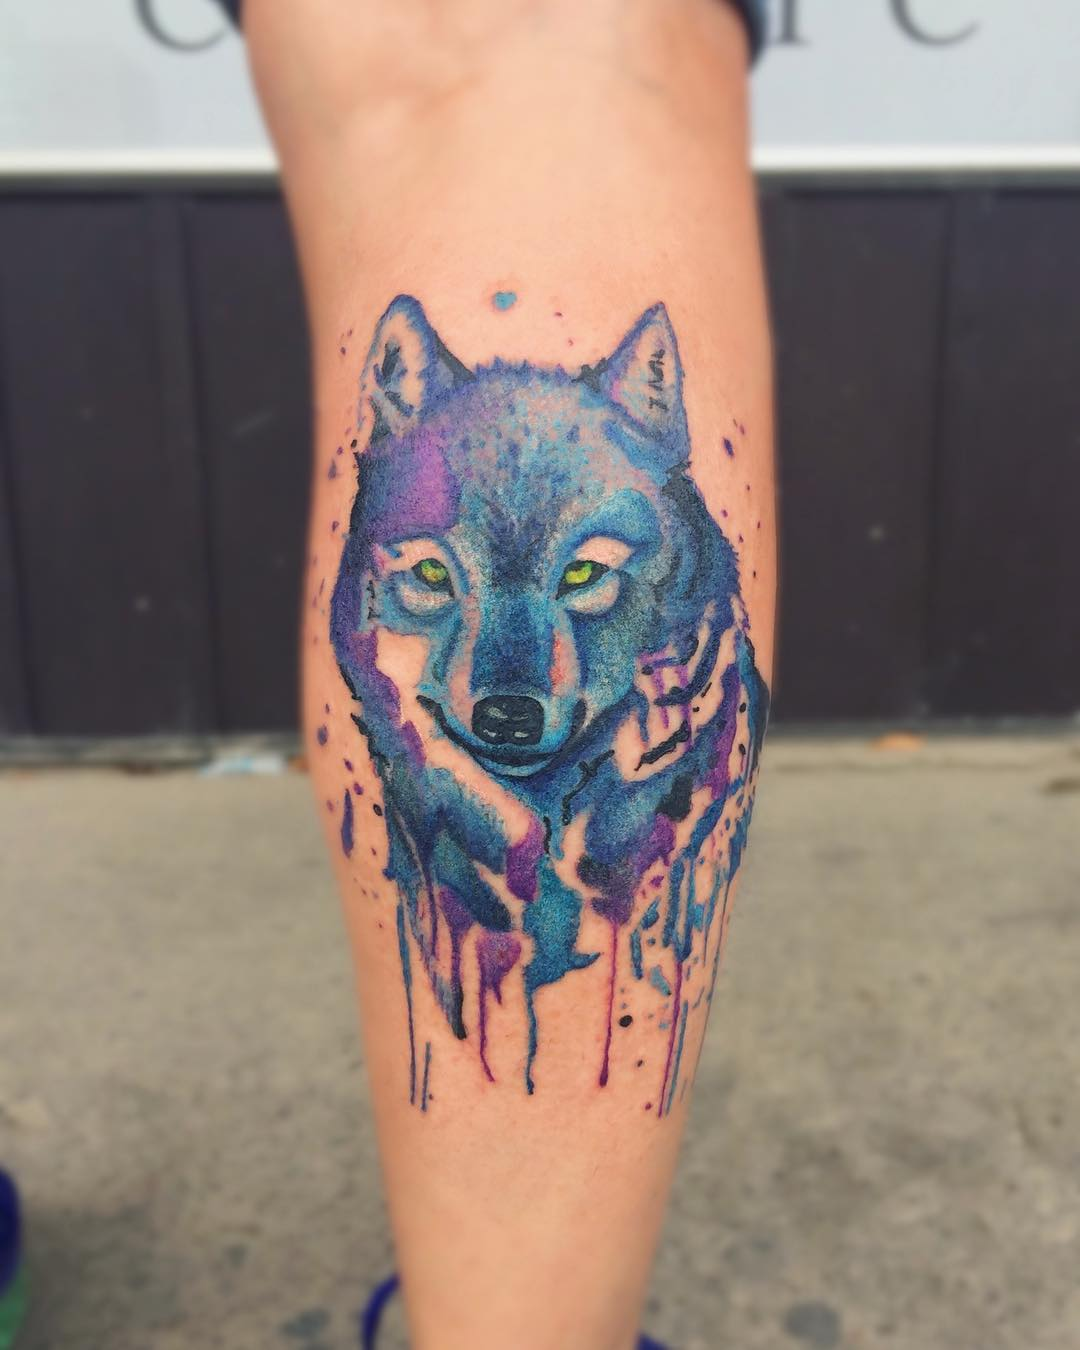 Good Wolf Bad Wolf Tattoo : tattoo, Stories, Behind, Makes, Strong, Tattoo, Designs], Prochronism